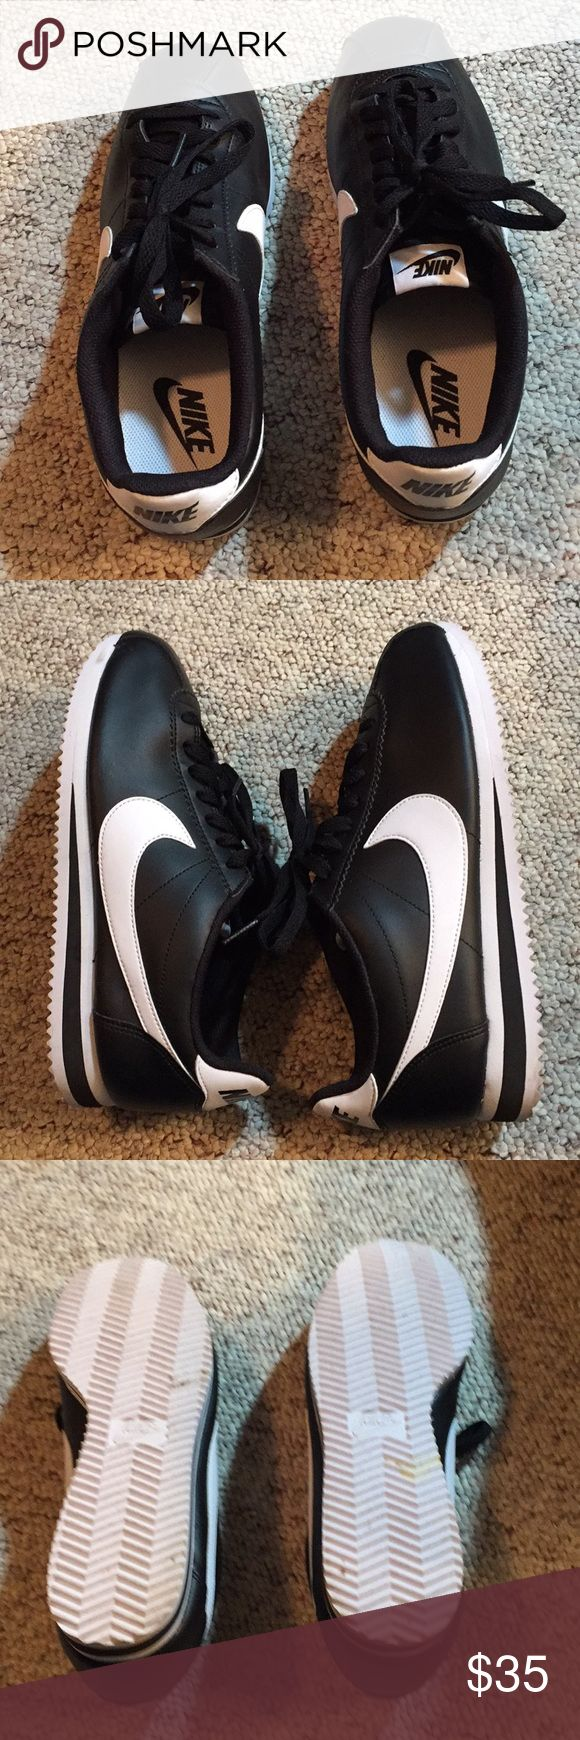 Nike Cortez Classic! Black and White Classic Nike Black and White Cortez Sneakers! Super cute with leggings and jeans! Both Retro and current! A timeless classic! Size 9 Nike Shoes Sneakers